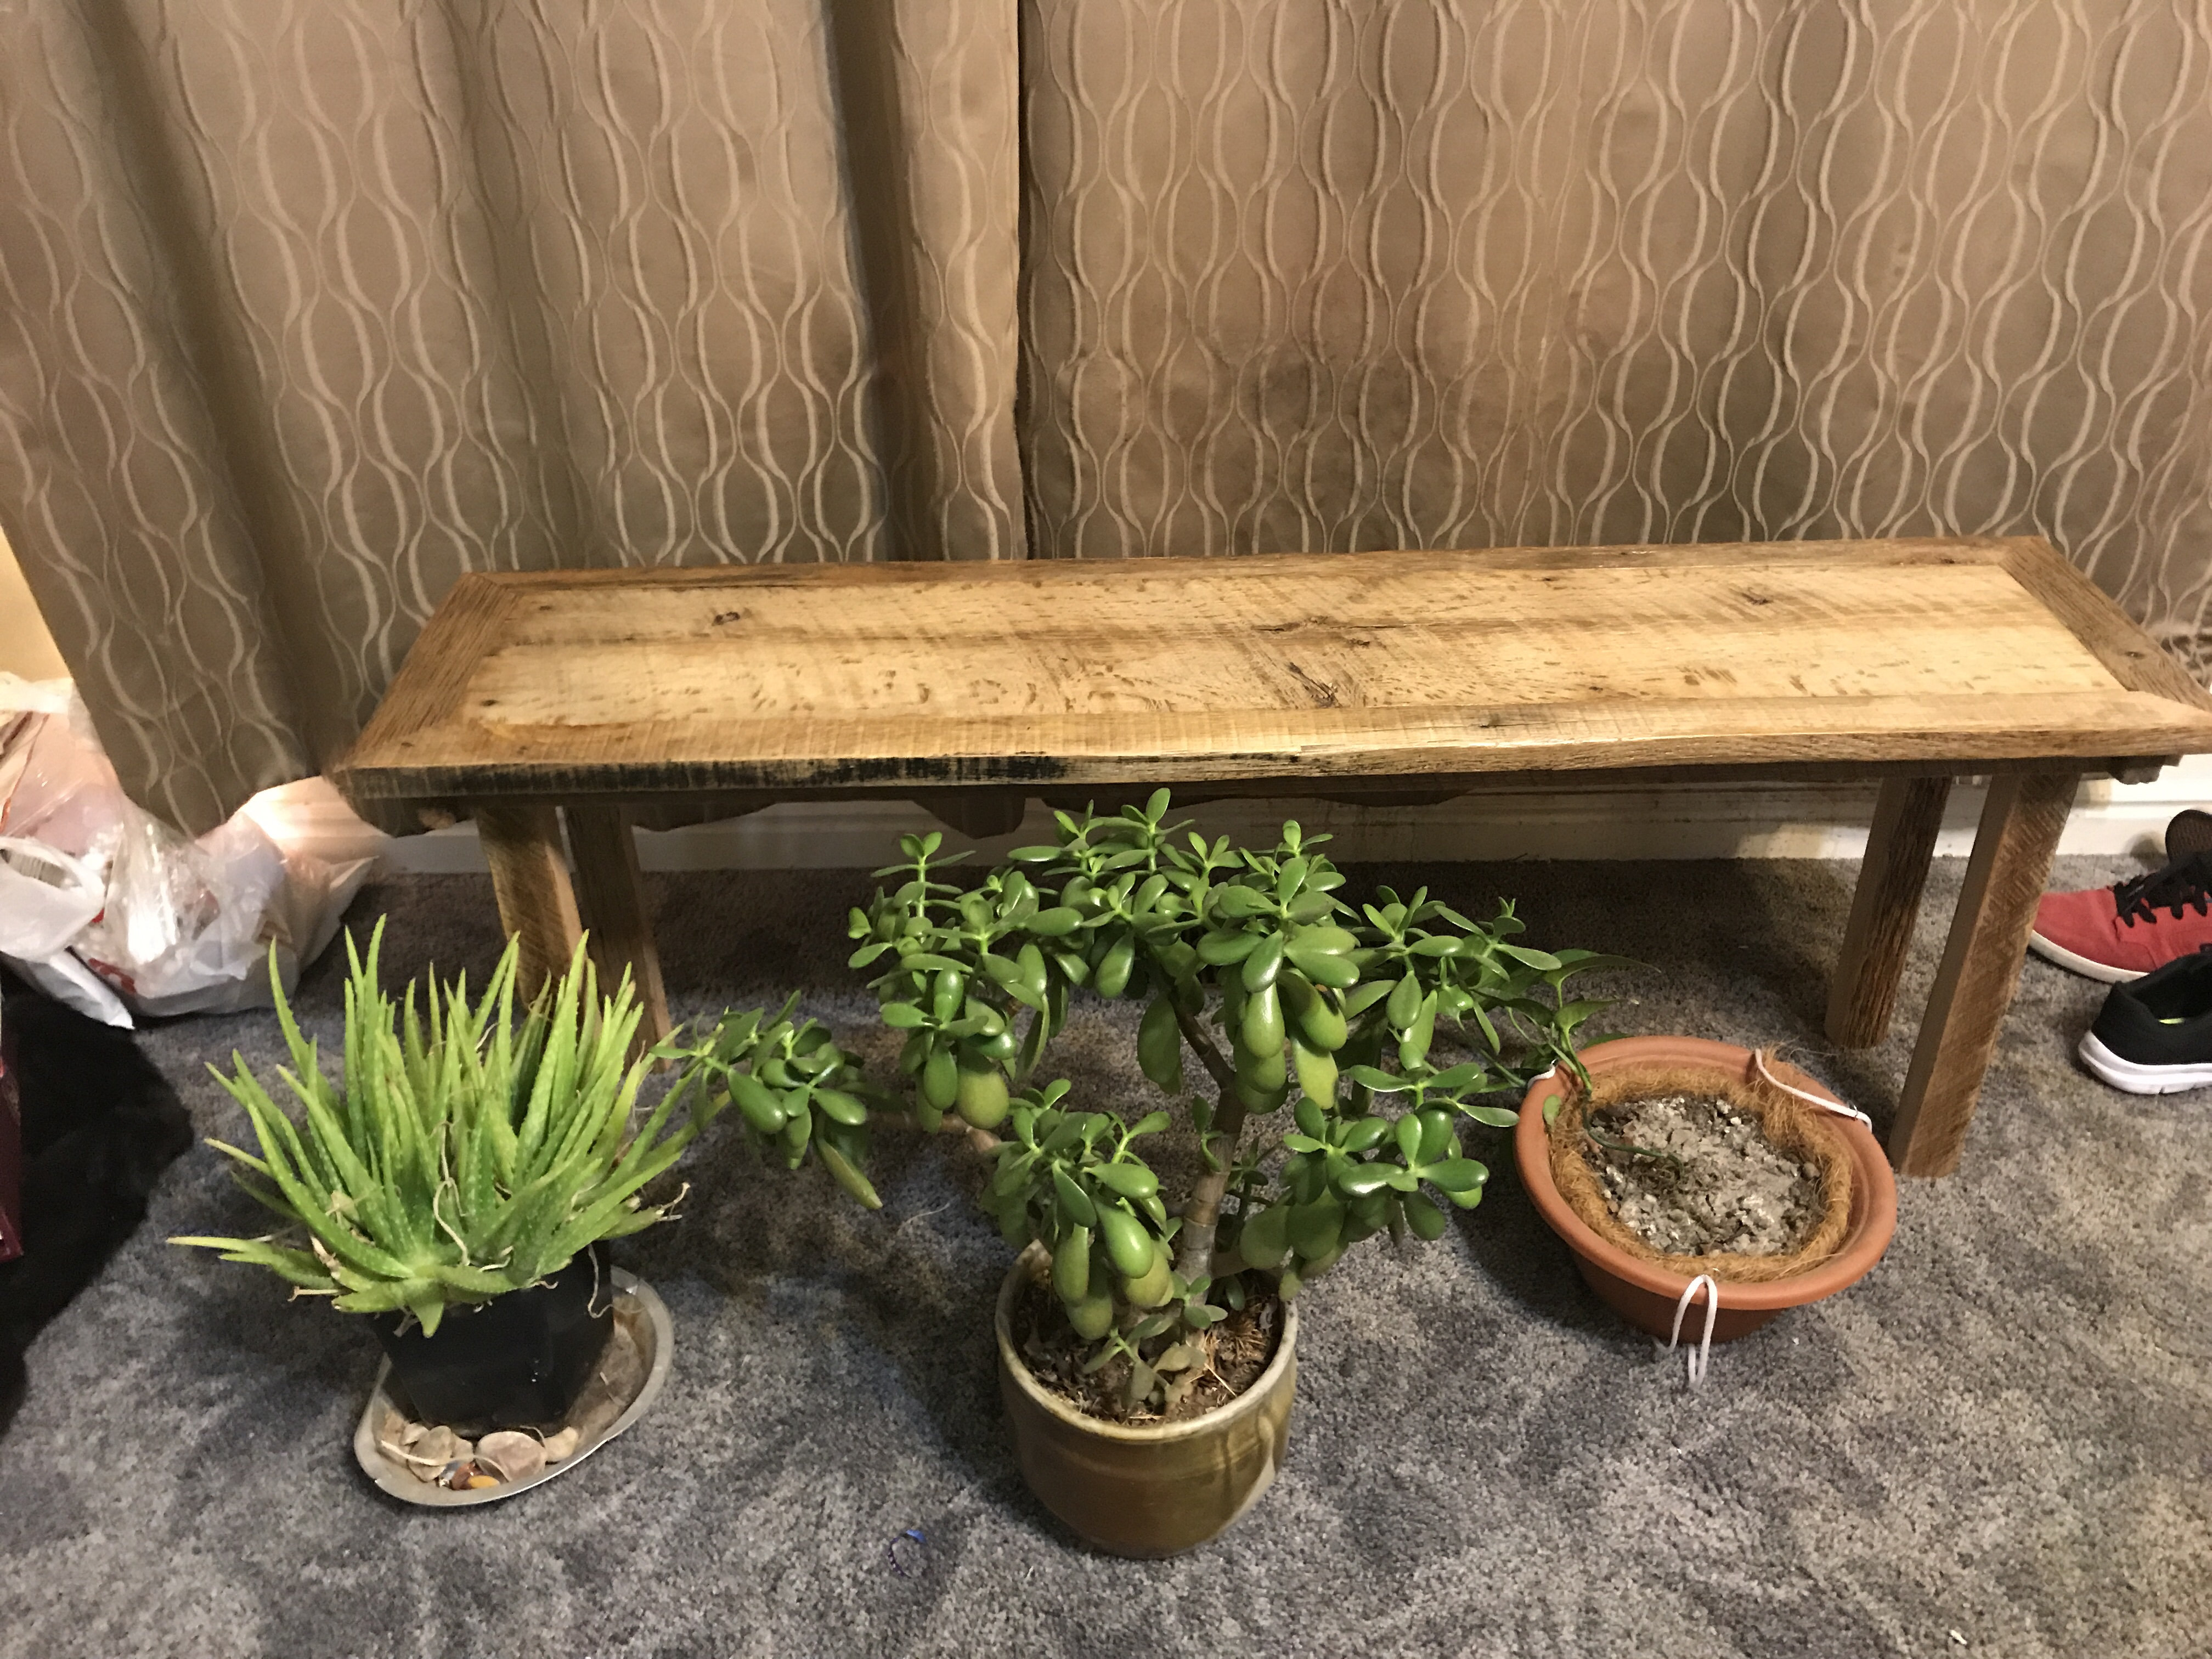 An oak barn wood bench sitting in front of a tan curtain with plants sitting on blue carpet in front of it